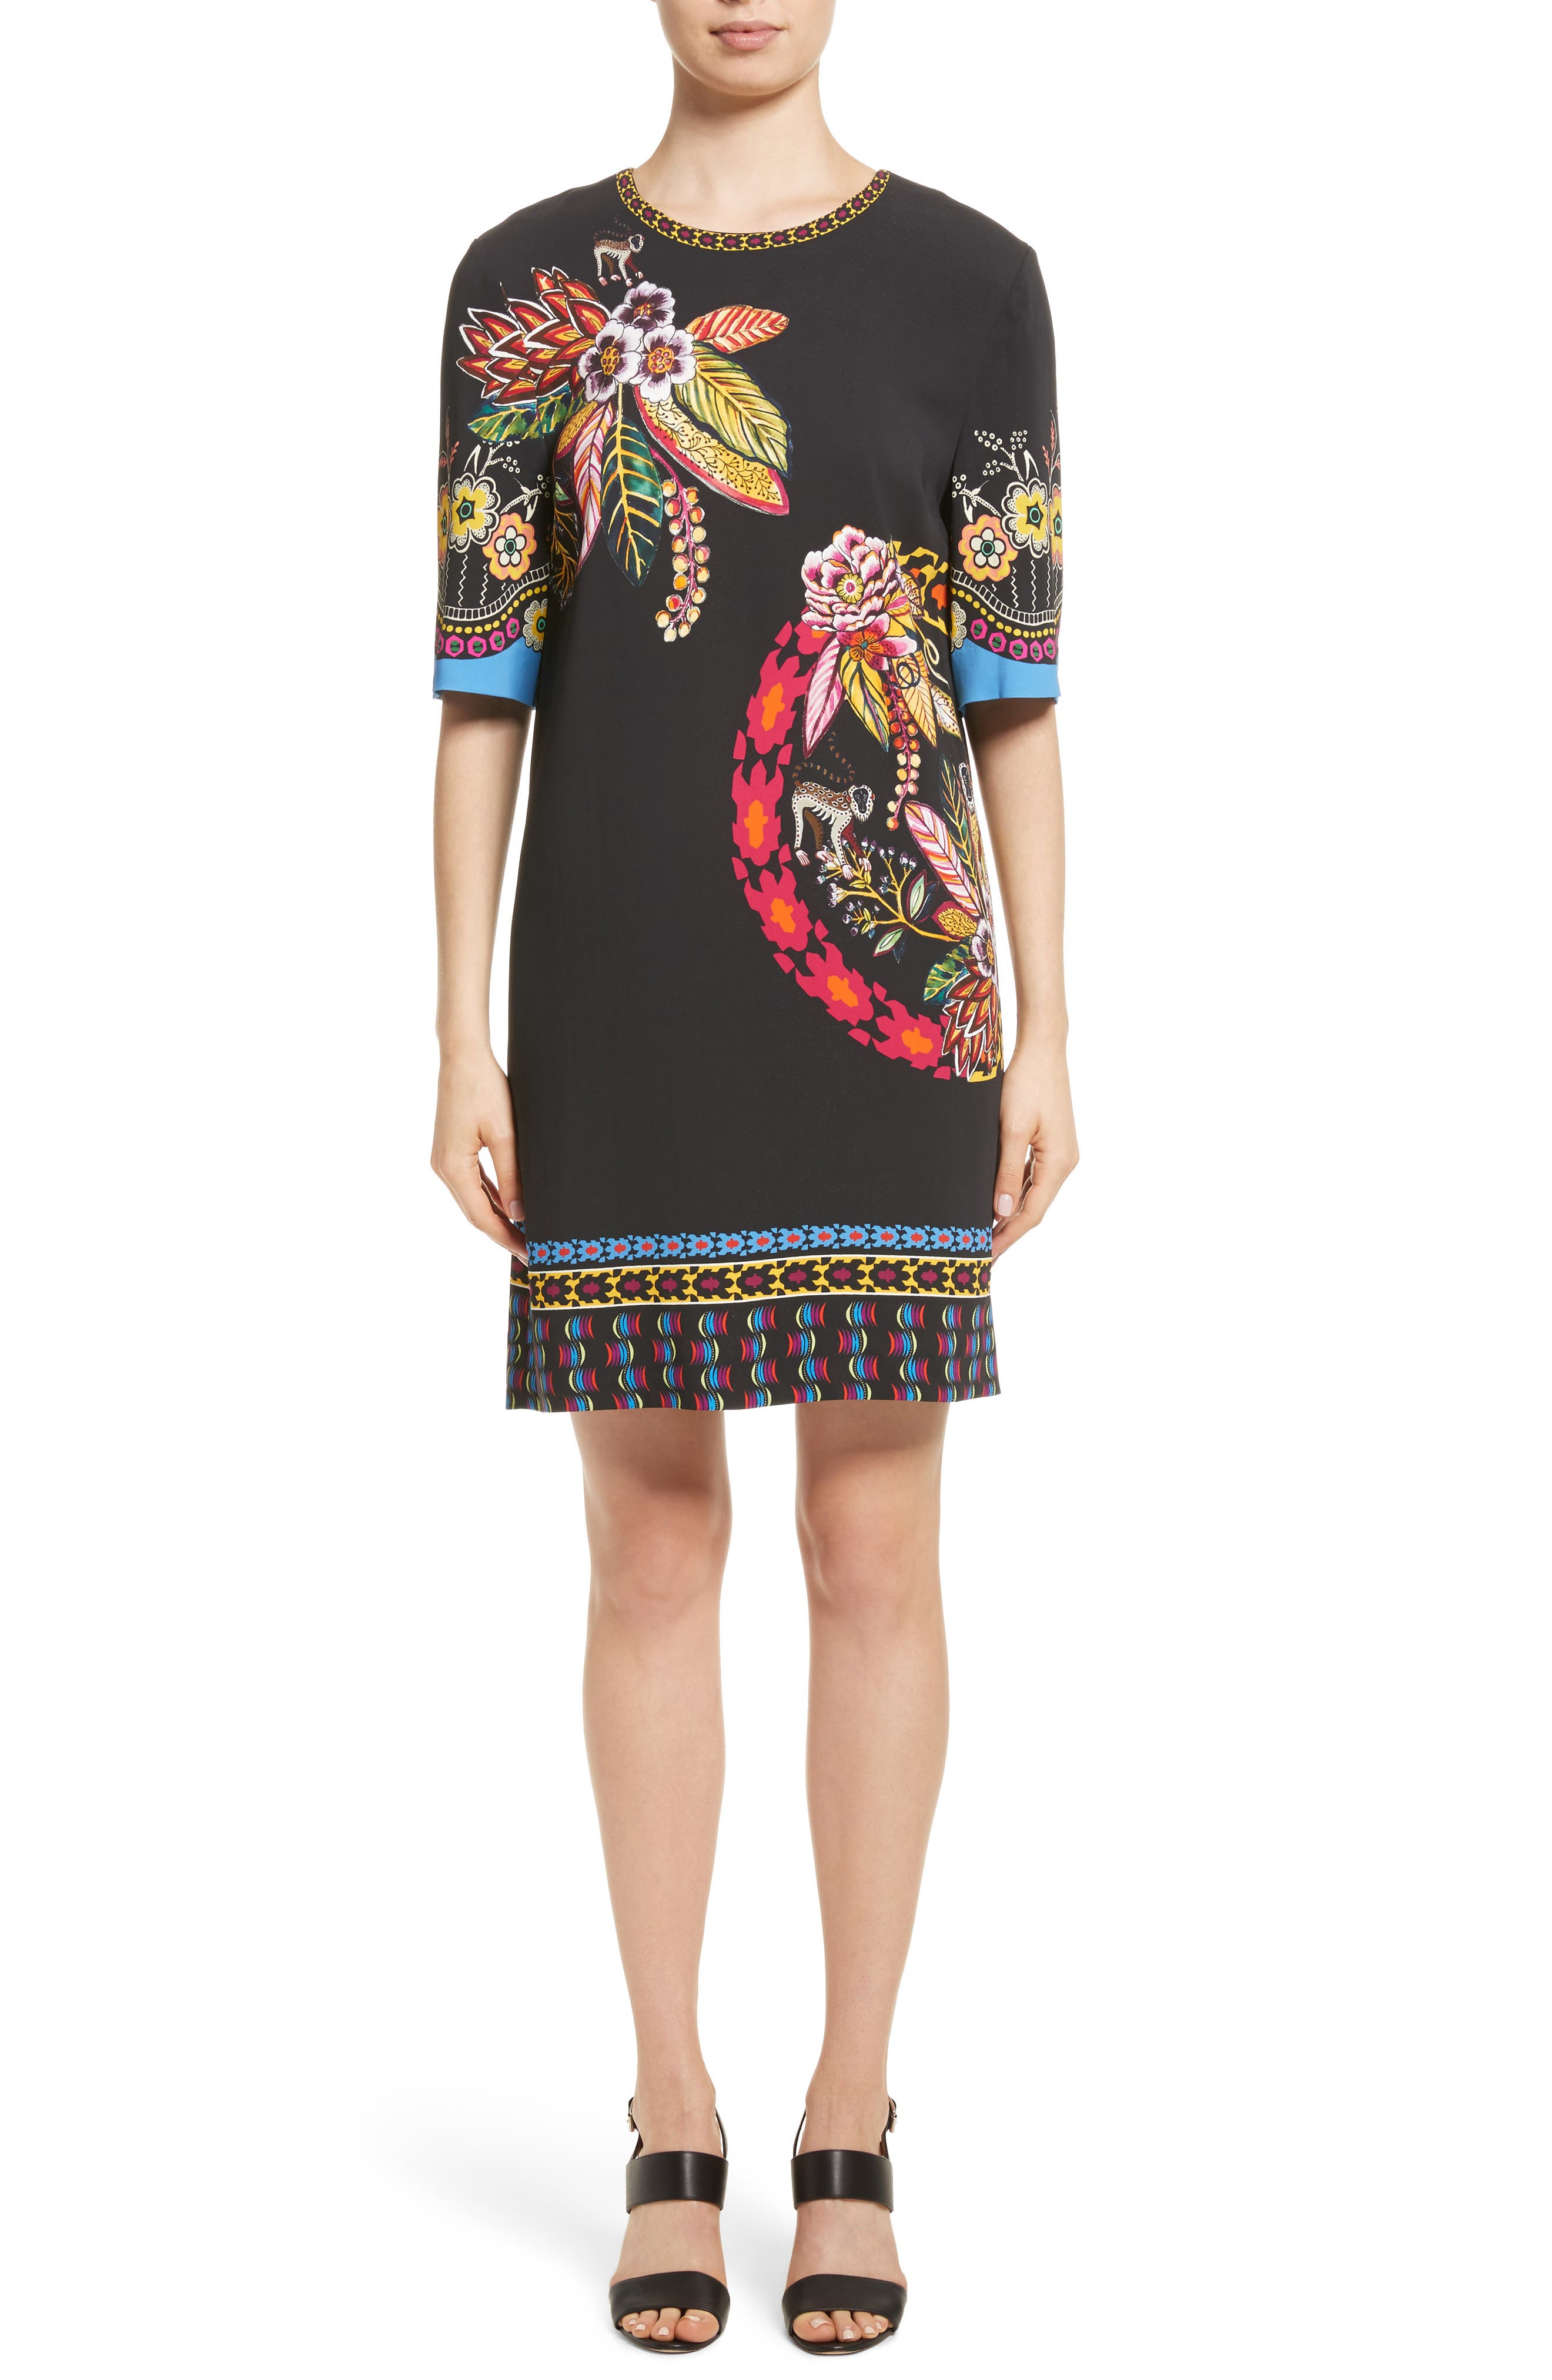 Etro Floral Jungle & Animal Print Dress